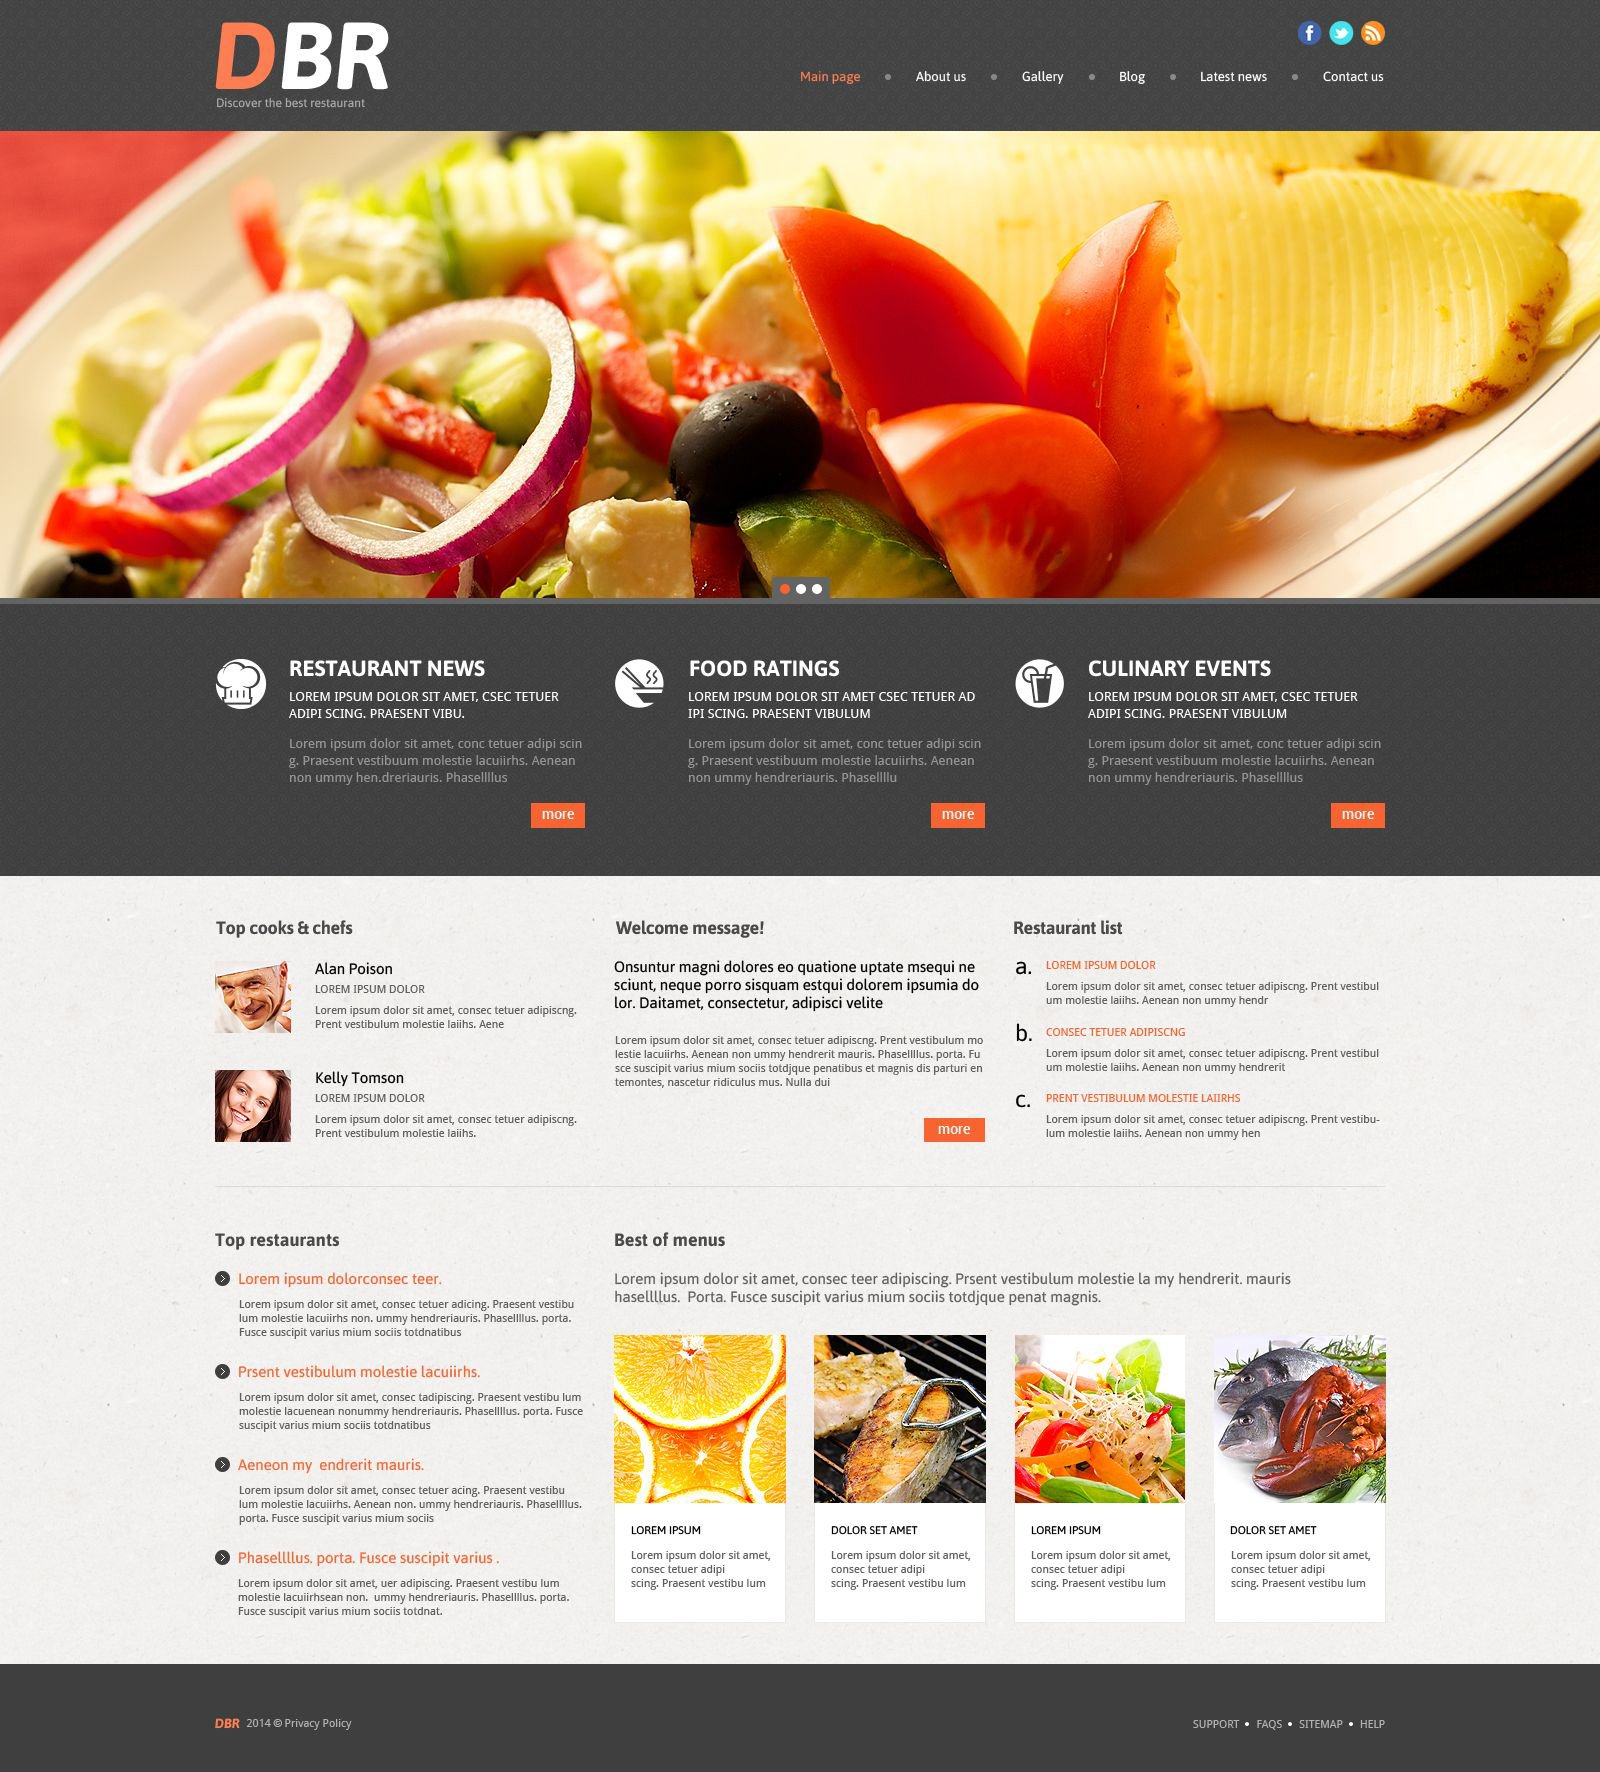 The DBR European Restaurant WordPress Design 53999, one of the best WordPress themes of its kind (cafe and restaurant, most popular), also known as DBR european restaurant WordPress template, fish WordPress template, marine WordPress template, products WordPress template, calamari WordPress template, squid WordPress template, oyster WordPress template, shrimp WordPress template, services WordPress template, cafe WordPress template, food WordPress template, drink WordPress template, menu WordPress template, waiters WordPress template, dish WordPress template, taste WordPress template, tasty WordPress template, flavor WordPress template, reservation and related with DBR european restaurant, fish, marine, products, calamari, squid, oyster, shrimp, services, cafe, food, drink, menu, waiters, dish, taste, tasty, flavor, reservation, etc.